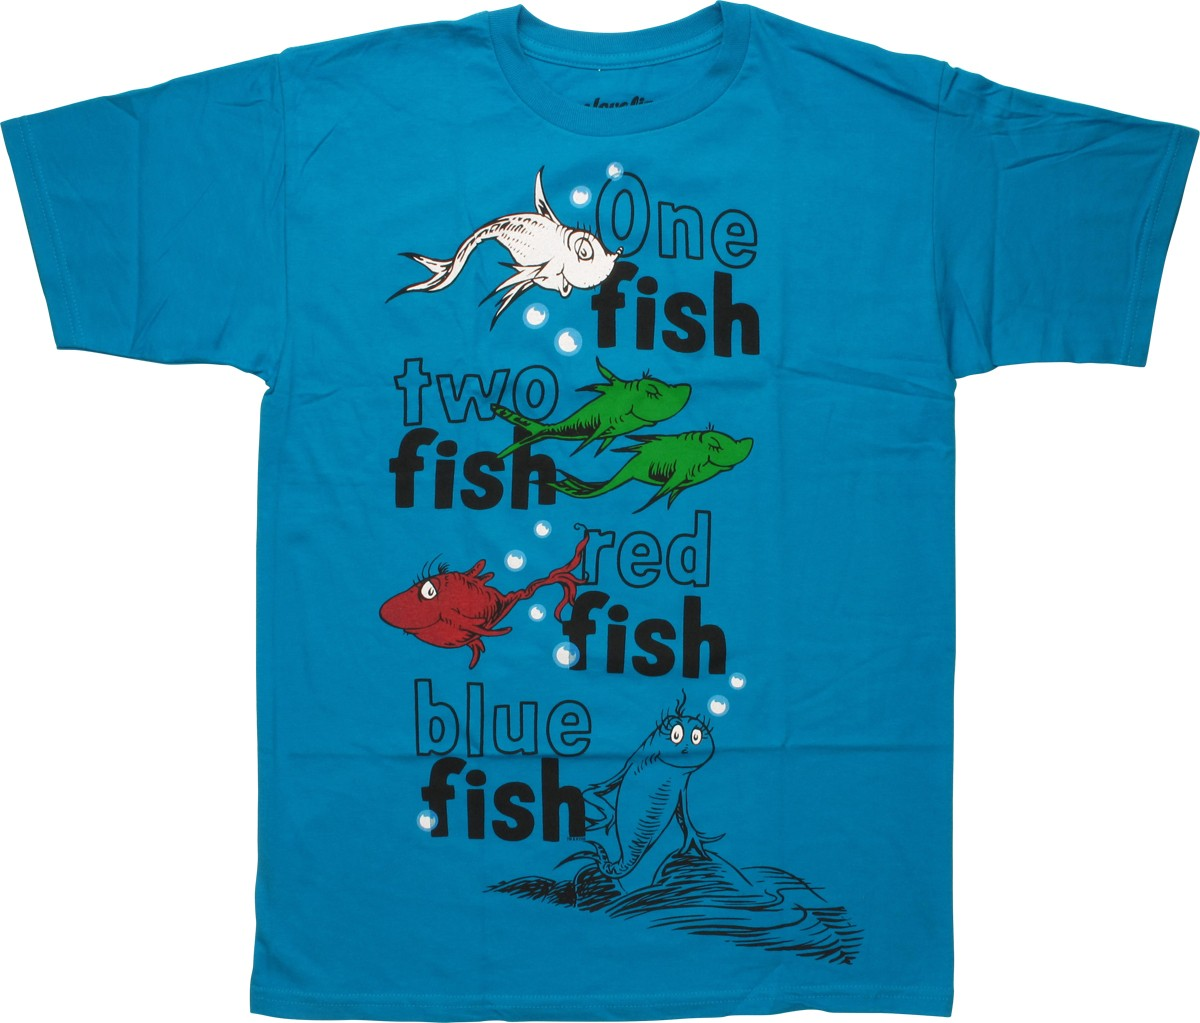 dr seuss 1 fish 2 fish red fish blue fish t shirt